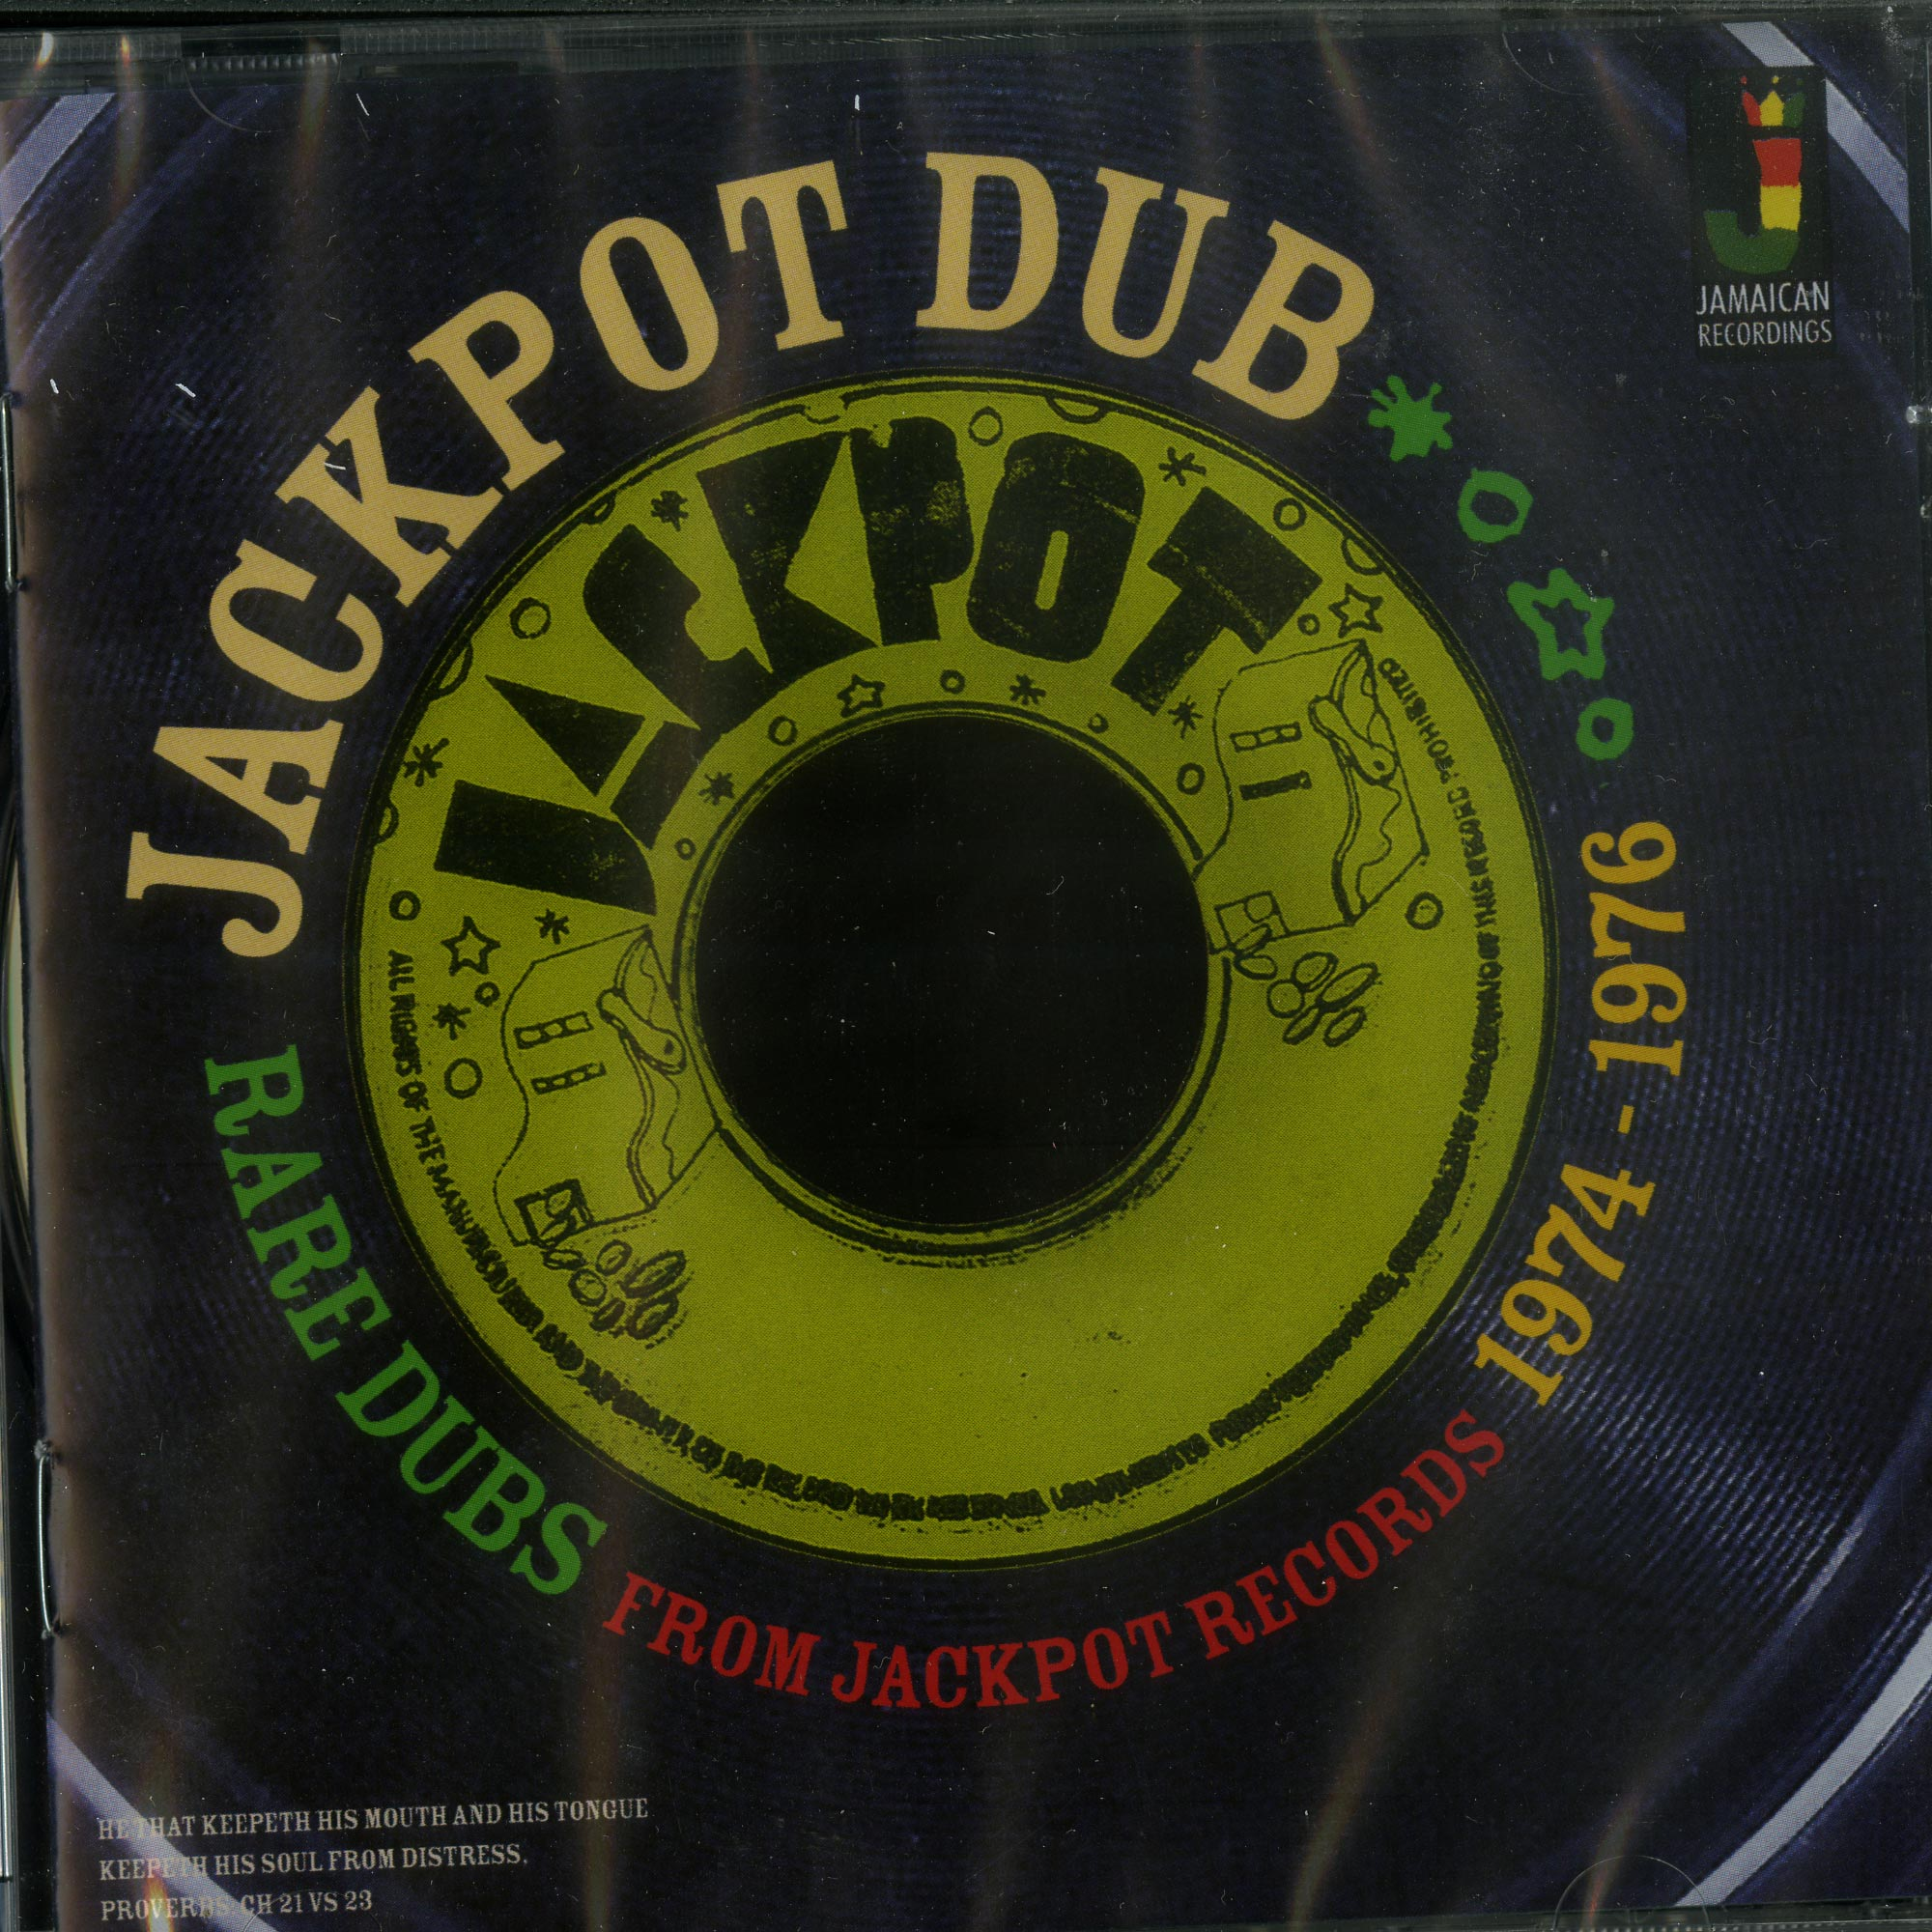 Various Artists - RARE DUBS FROM JACKPOT RECORDS 1974 - 1976